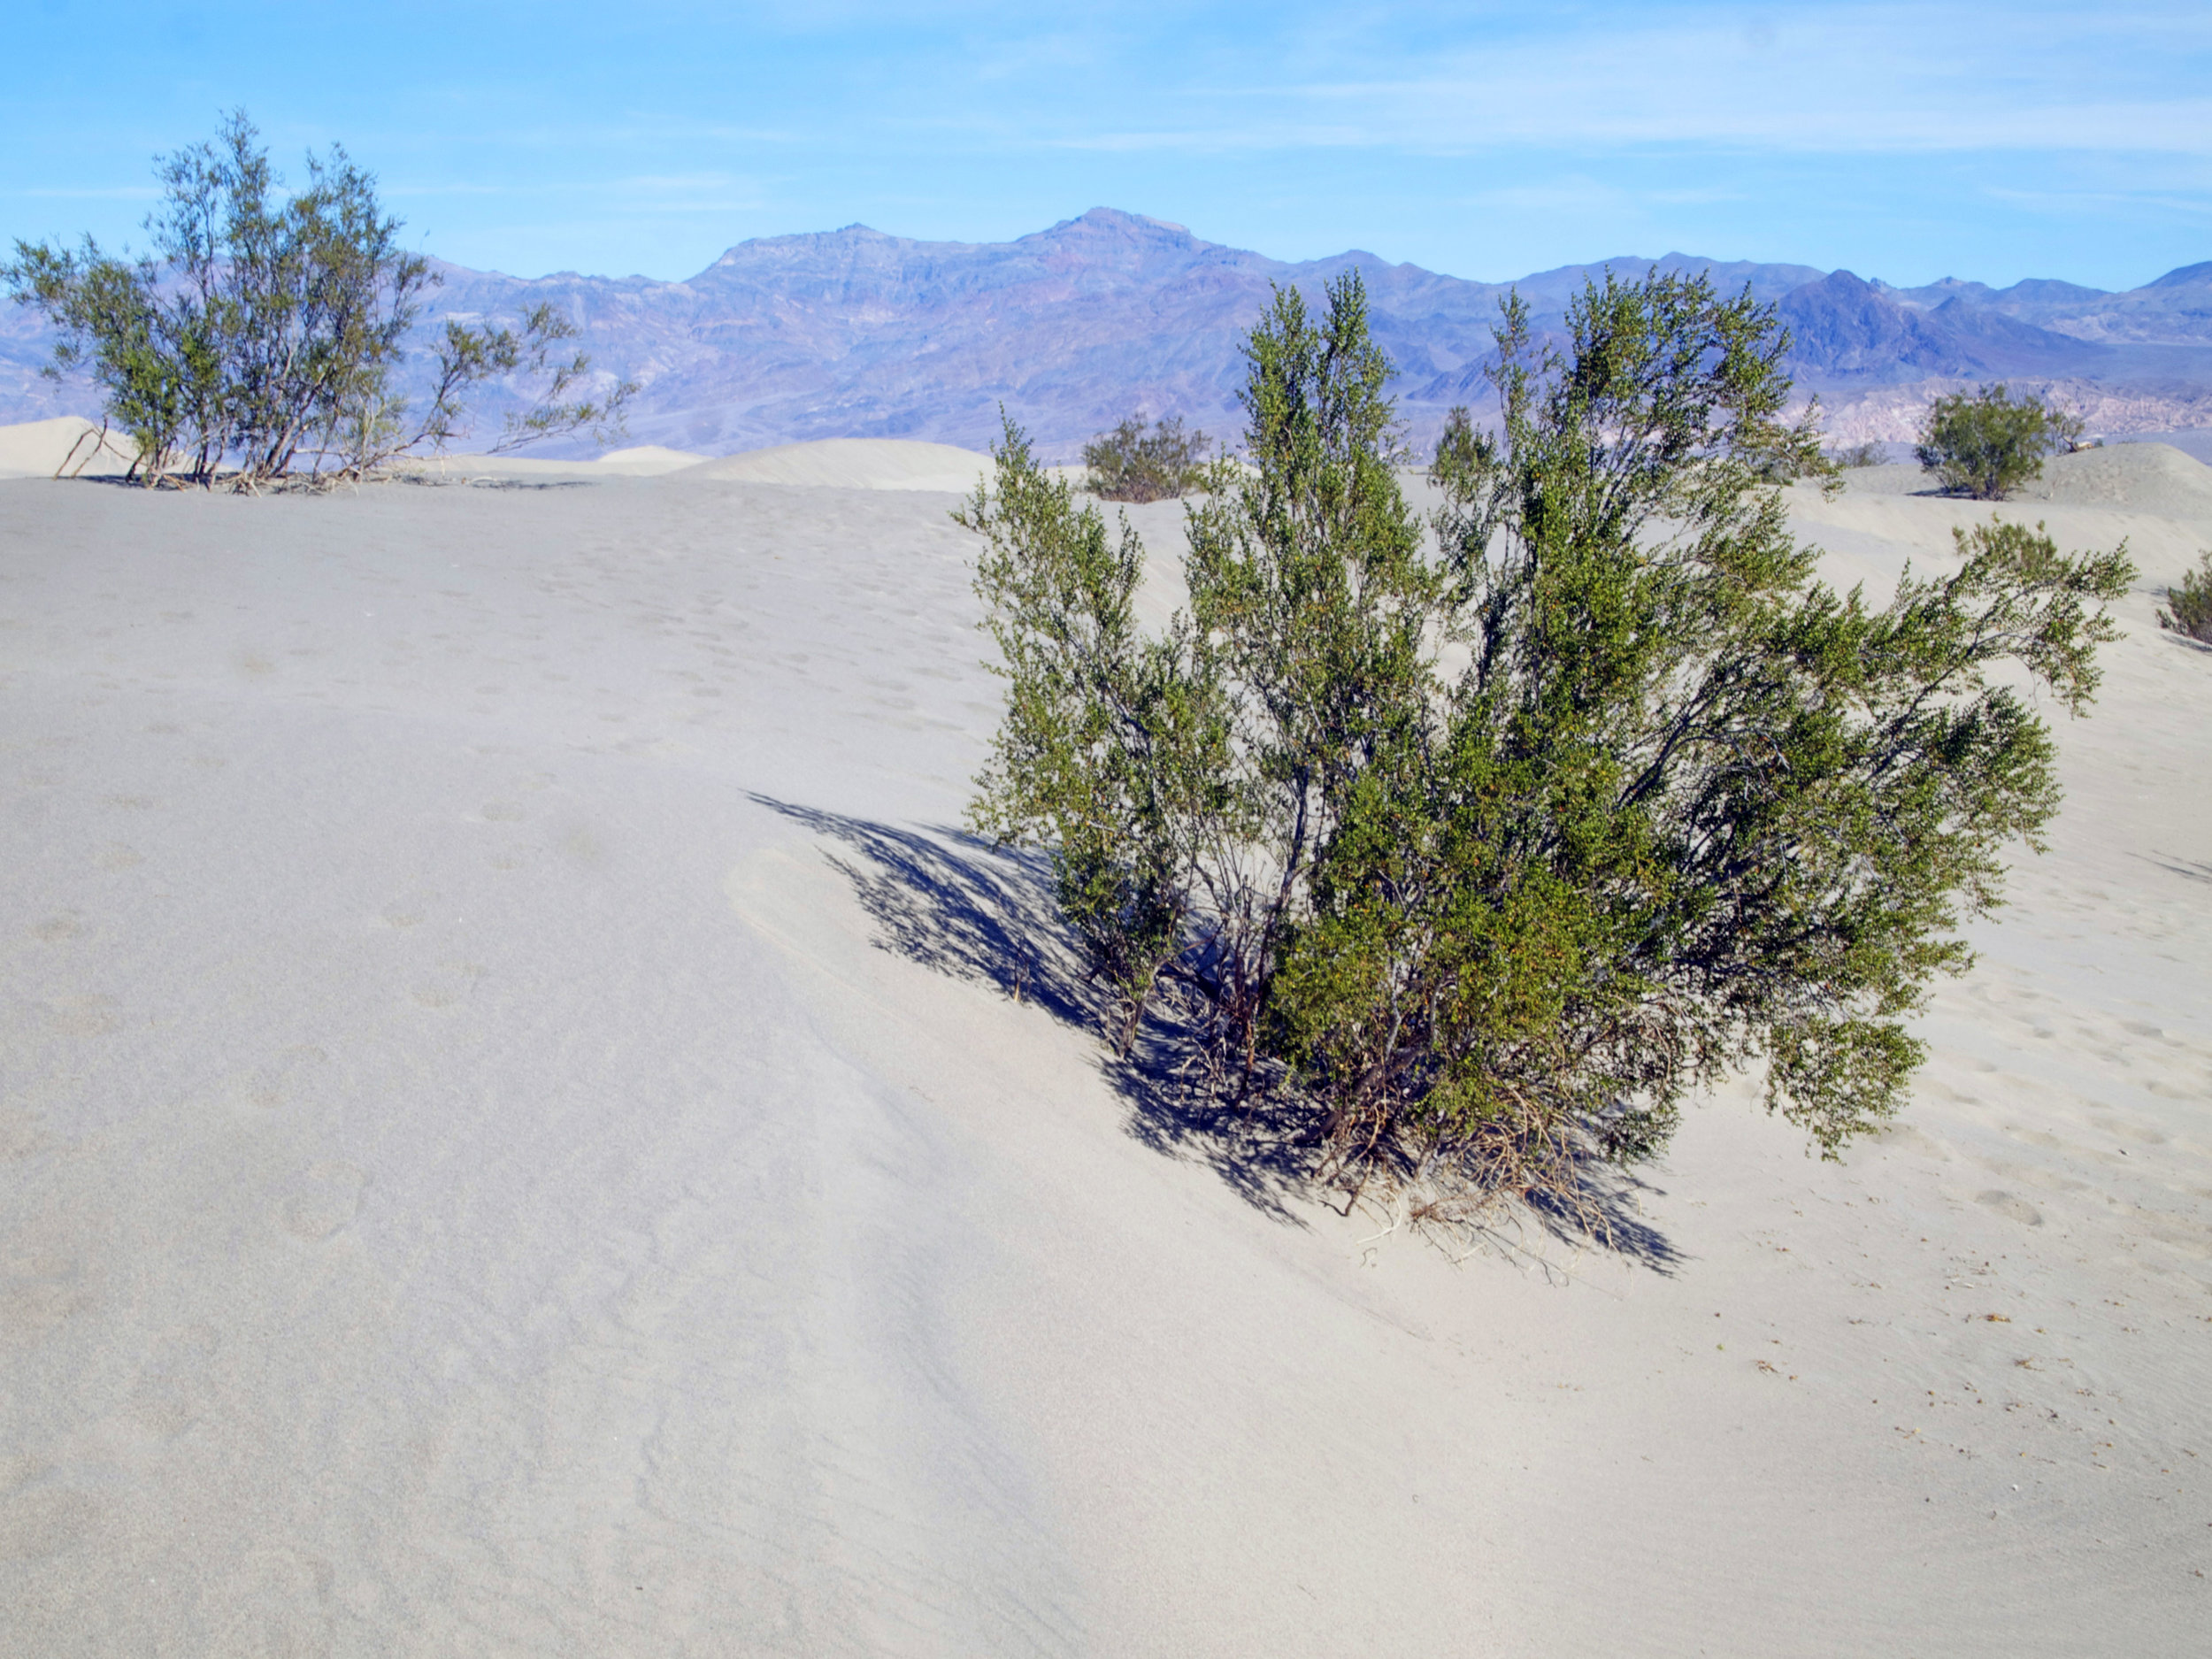 Creosote bushes, Death Valley - Photo by Tim Giller